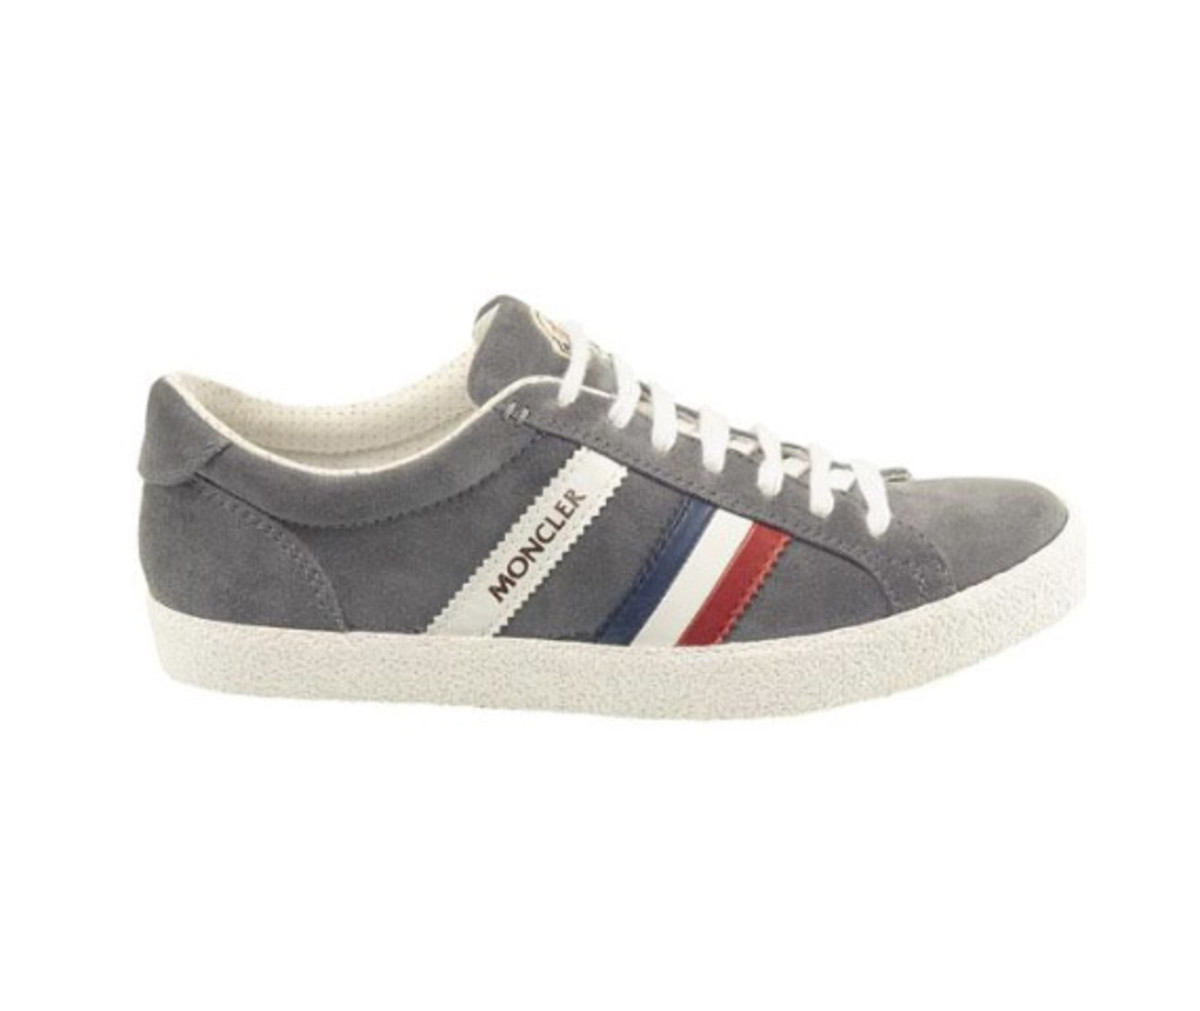 moncler-ss10-sneakers-collection-2